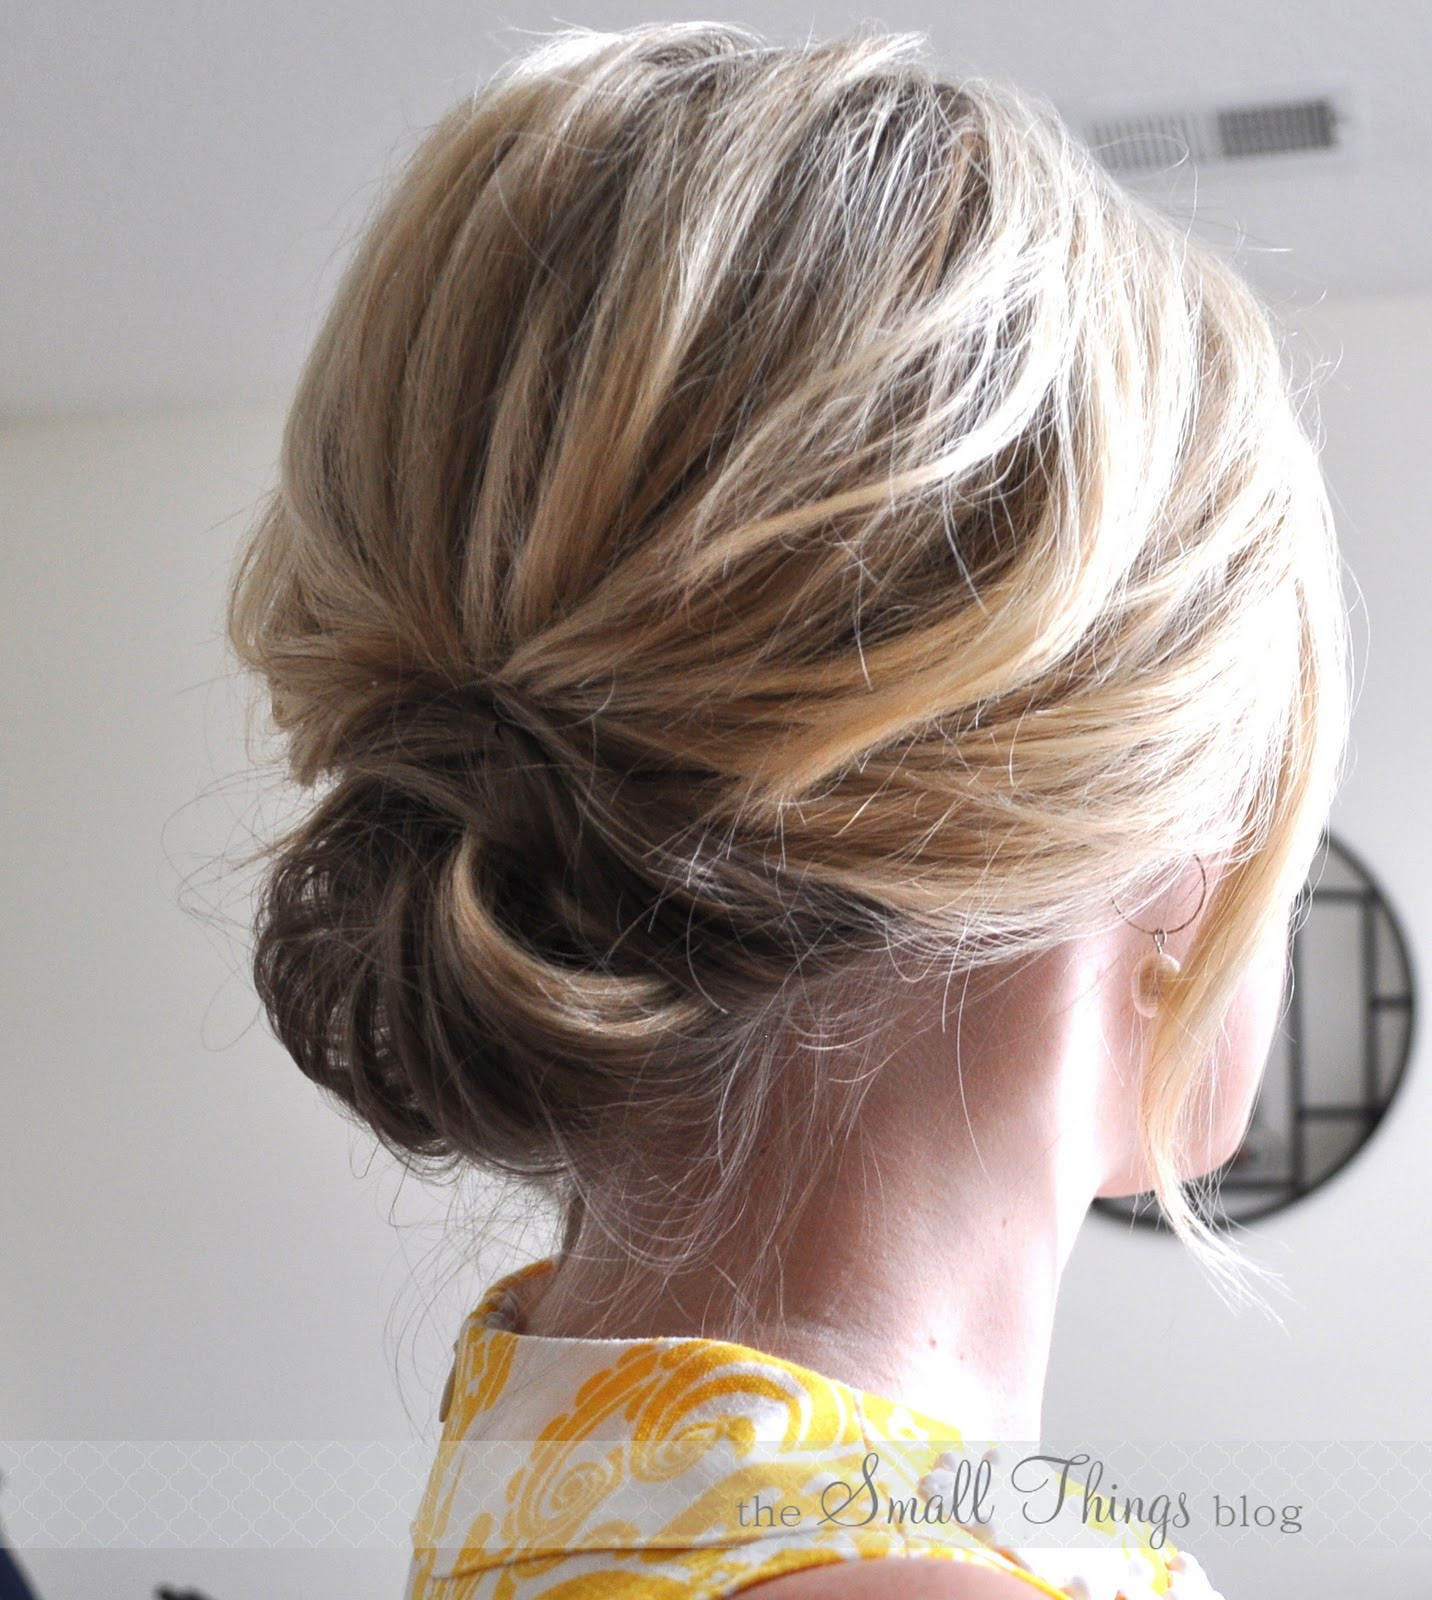 Best ideas about Easy Up Hairstyles . Save or Pin The Chic Updo – The Small Things Blog Now.